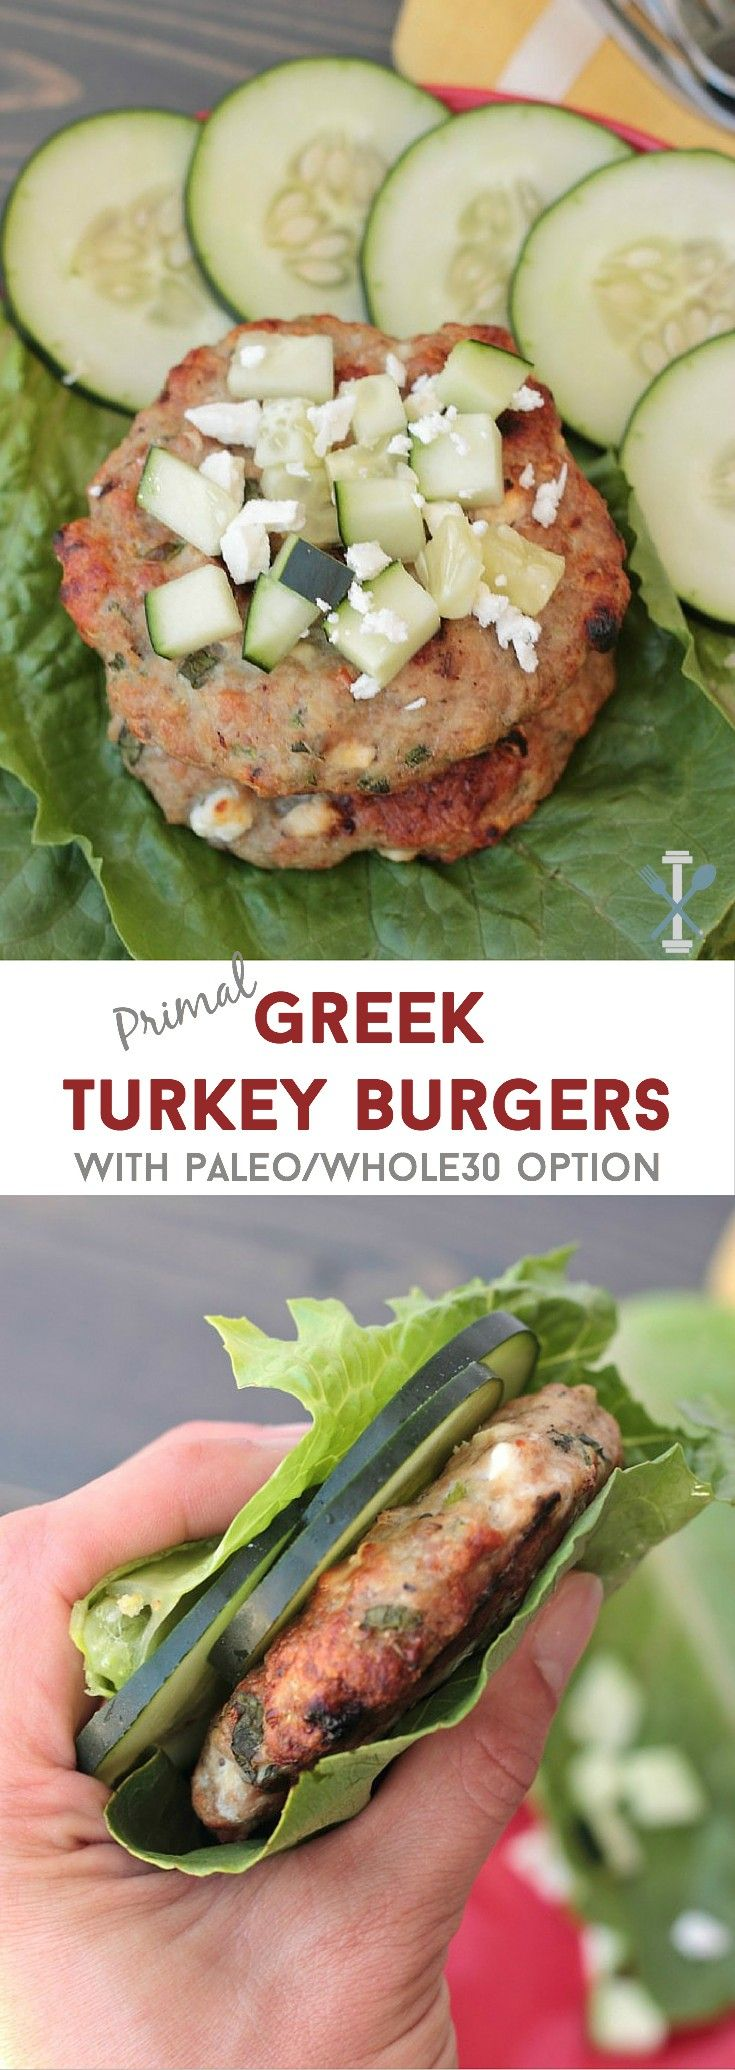 These primal Greek turkey burgers are the perfect lean burger - packed with… (Ketogenic Recipes Turkey)